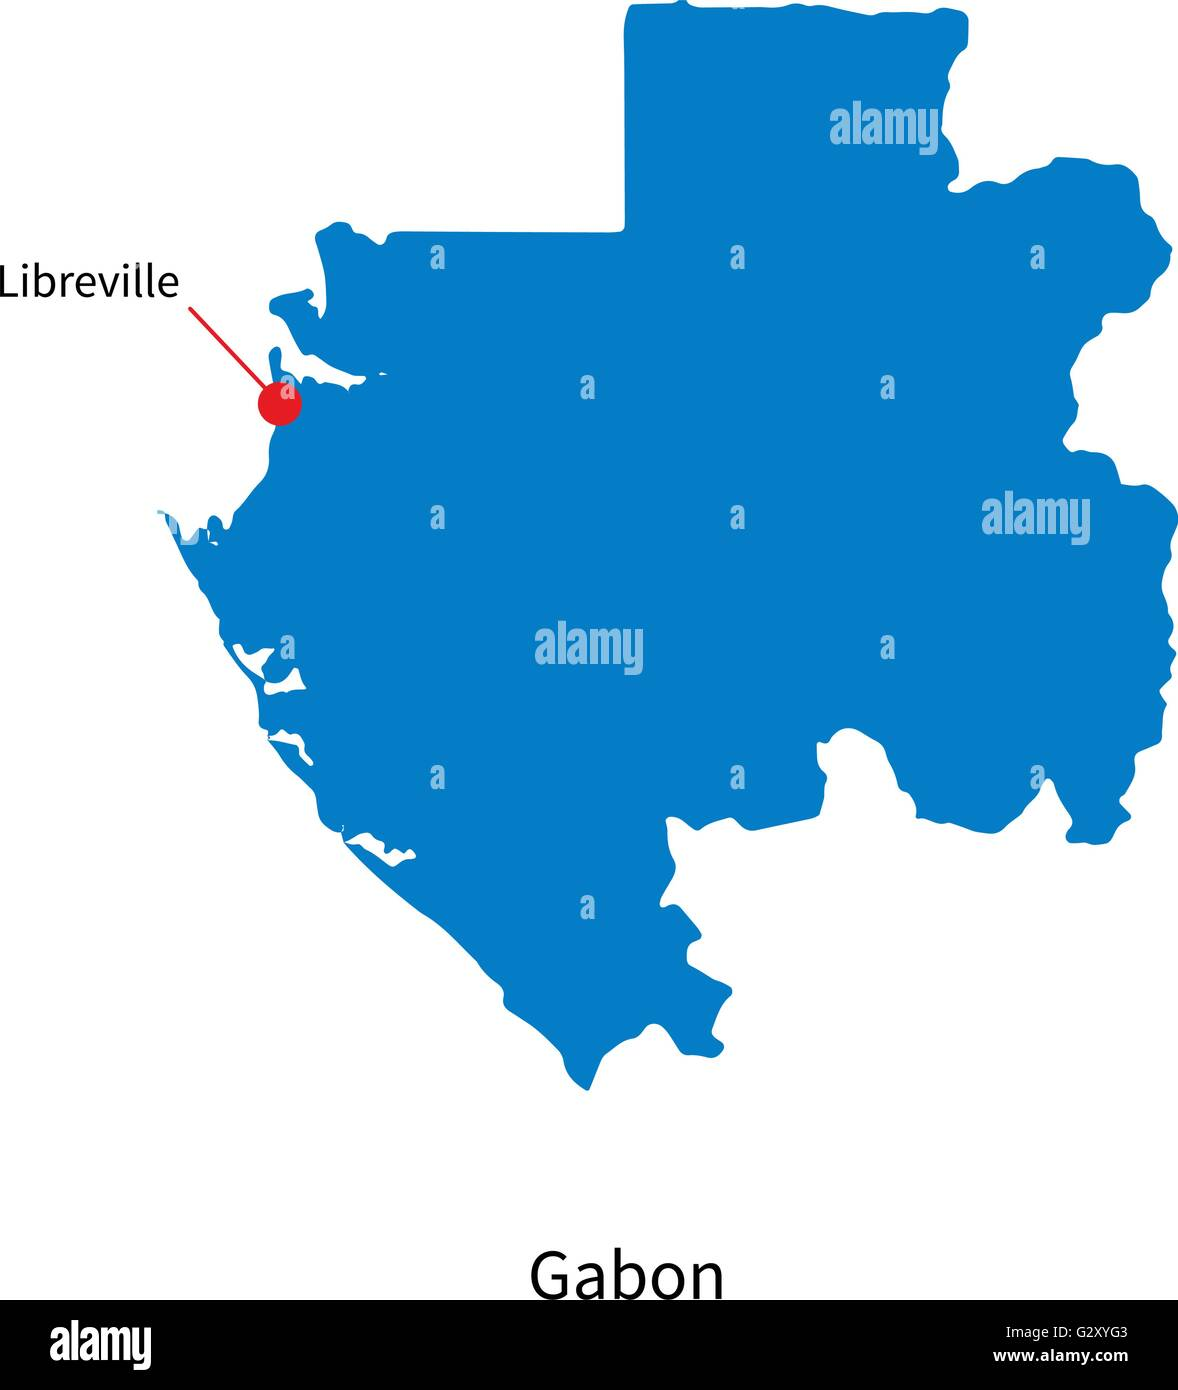 Detailed Vector Map Of Gabon And Capital City Libreville Stock - Where is gabon on the world map